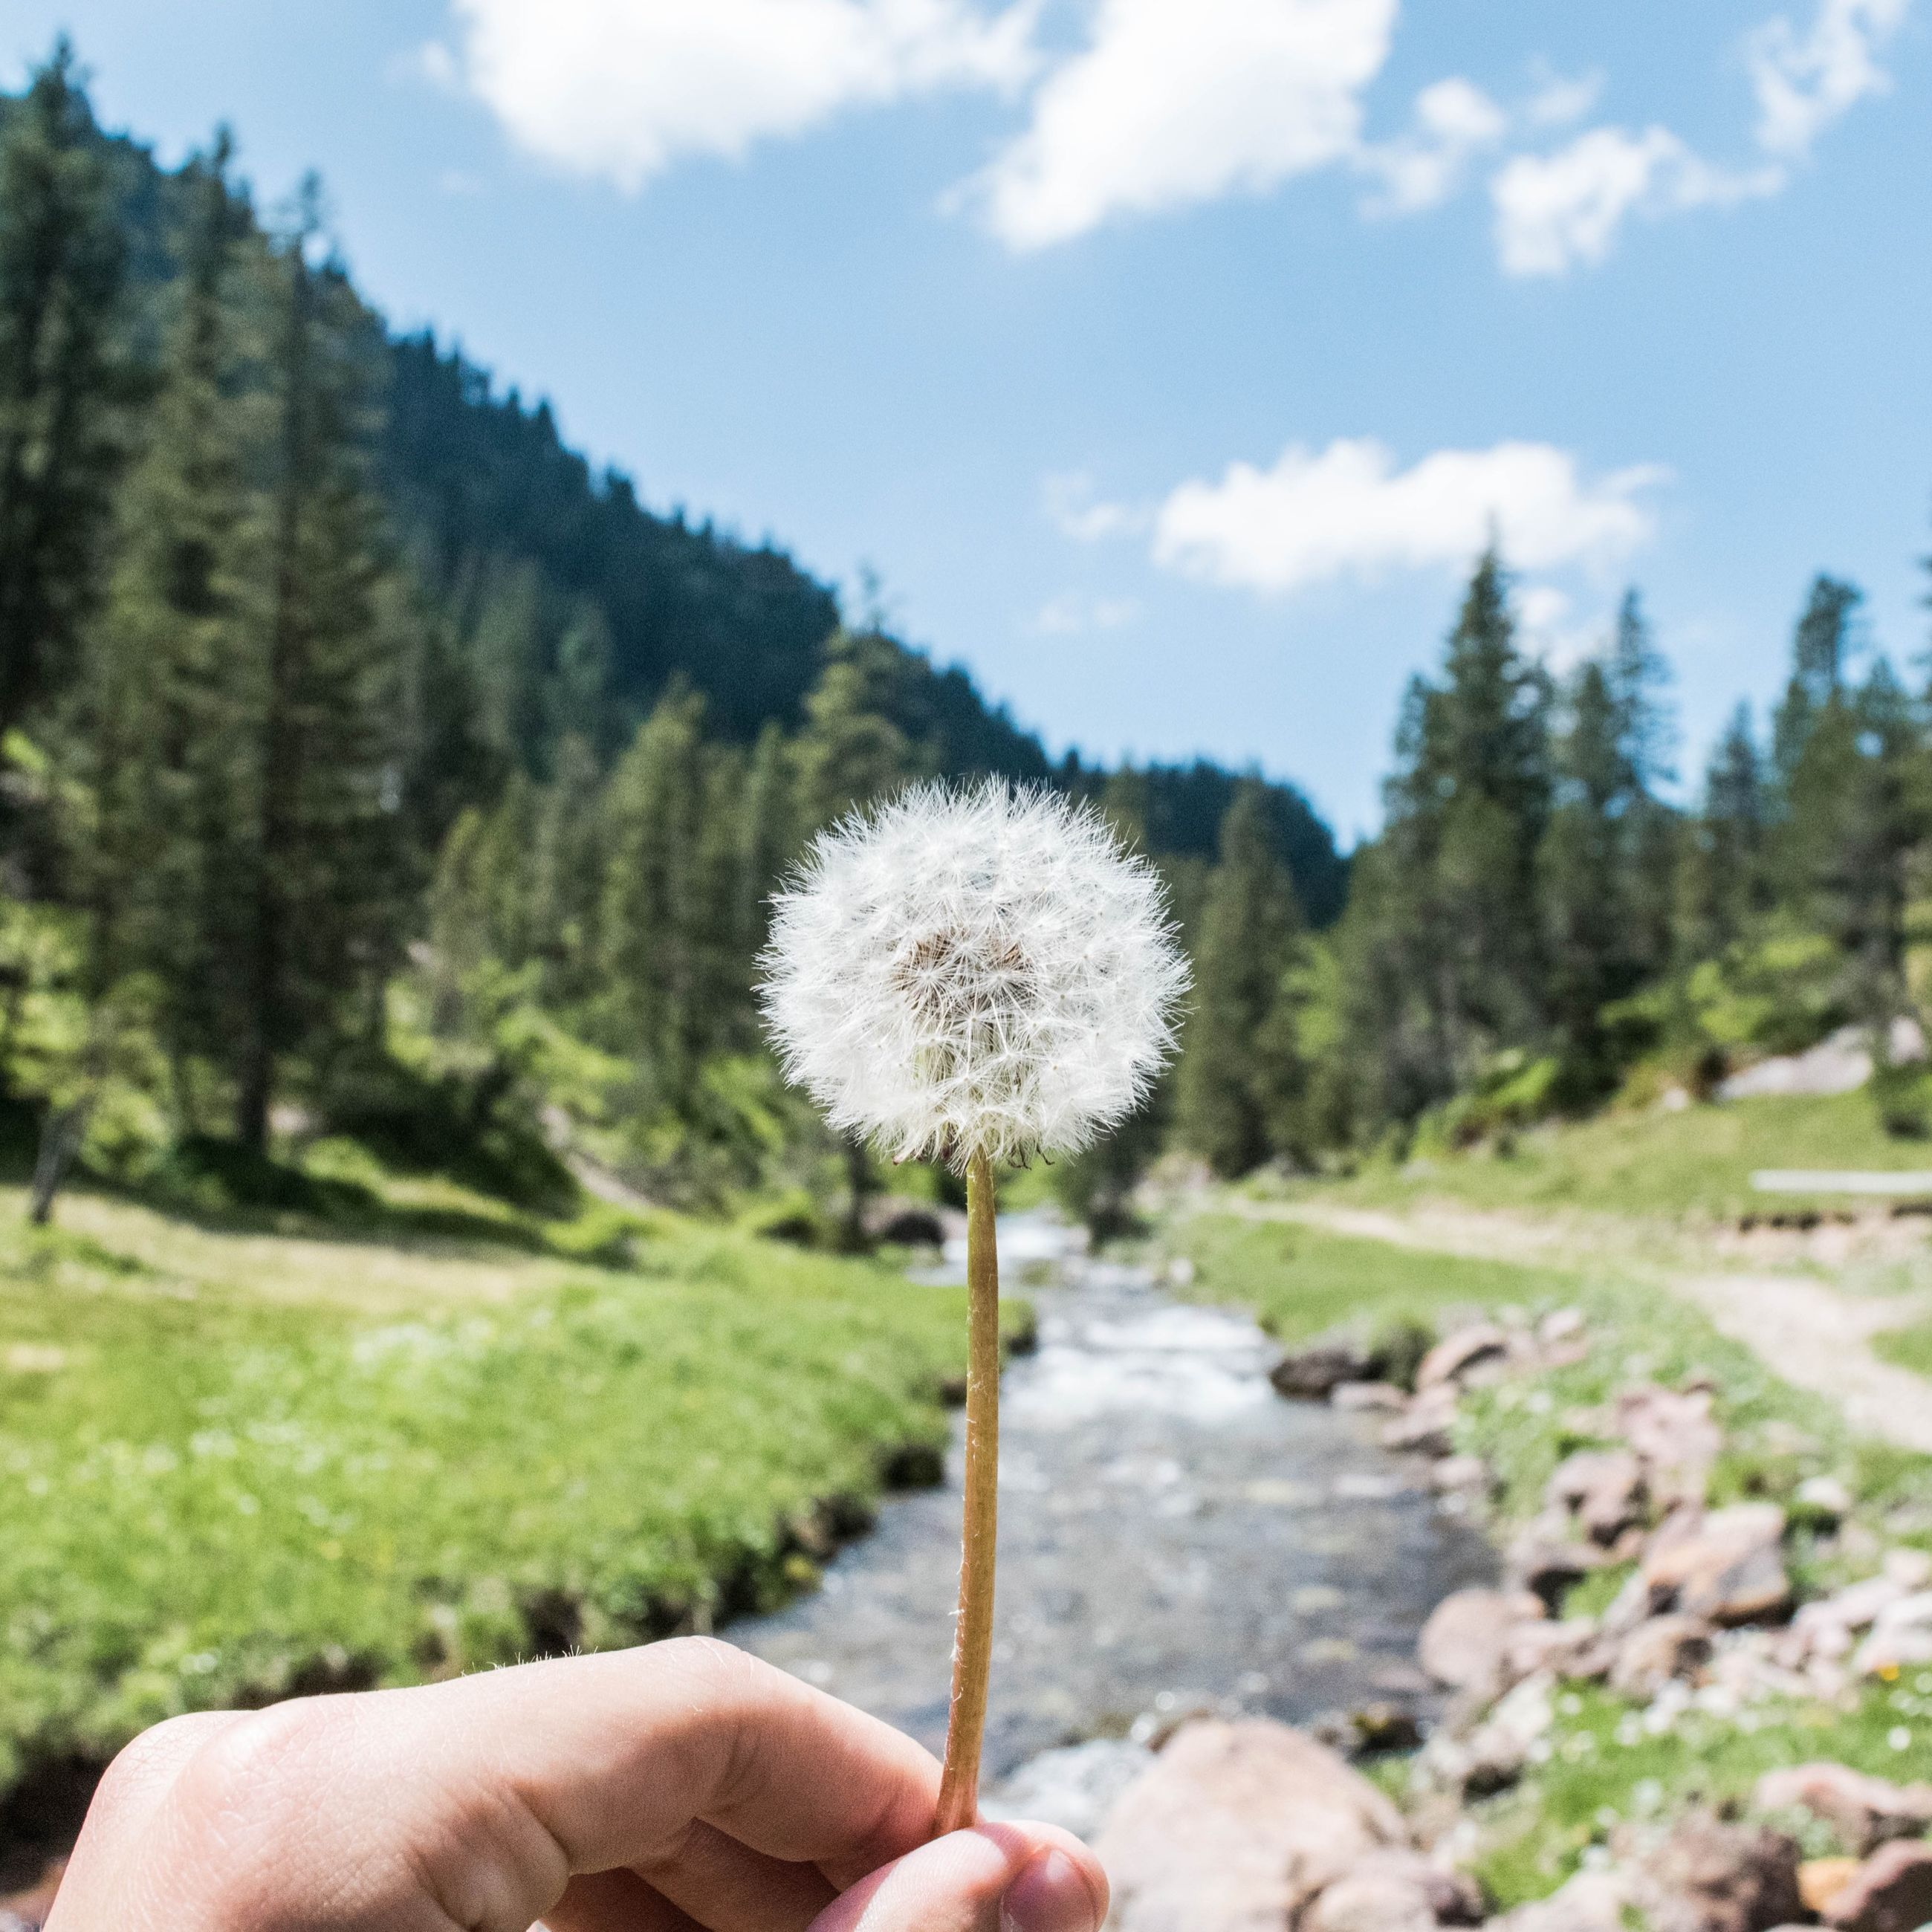 dandelion, person, flower, holding, fragility, single flower, freshness, growth, white color, nature, beauty in nature, flower head, focus on foreground, part of, close-up, stem, sky